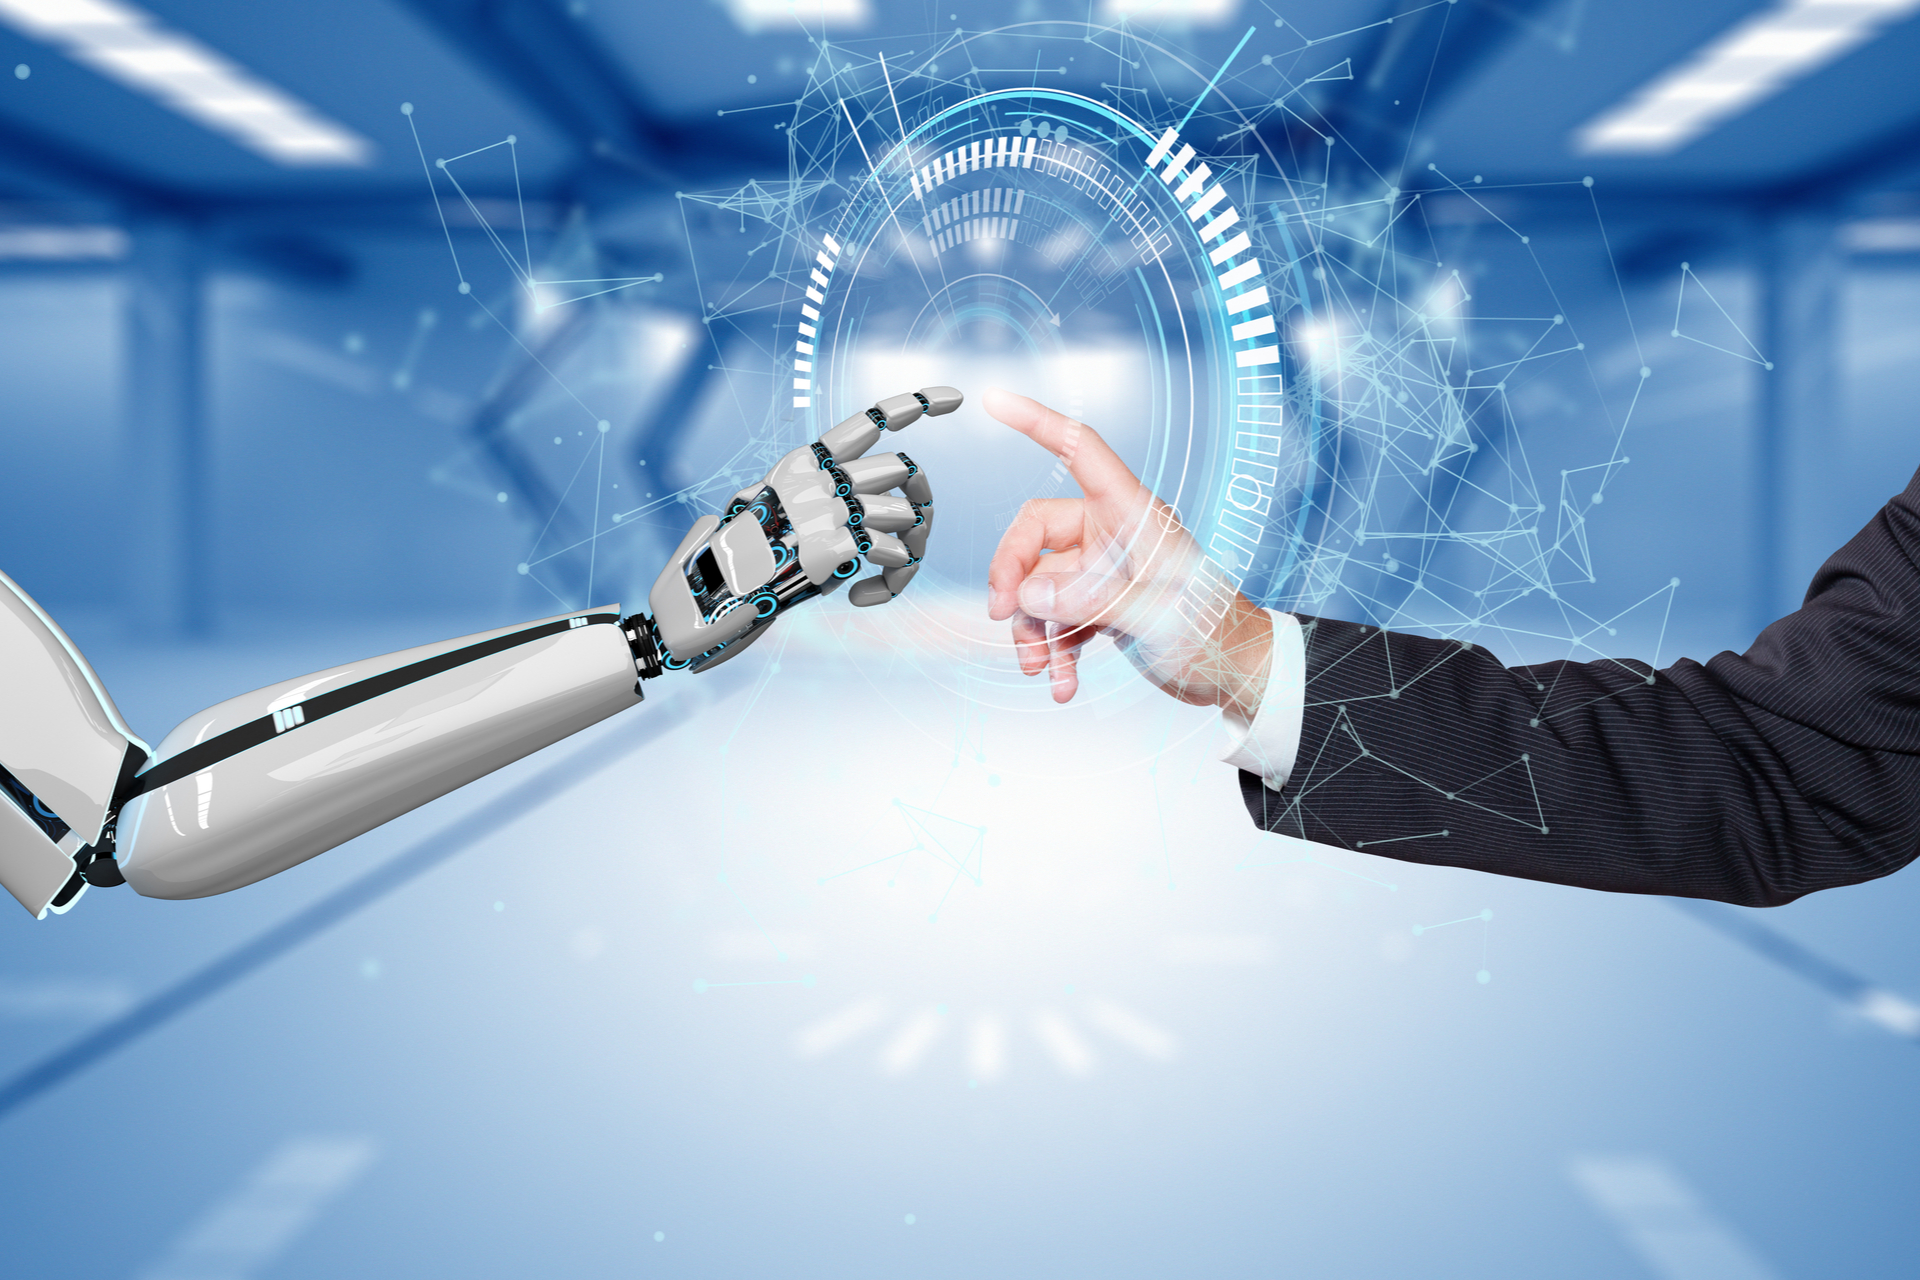 robot hand and a human hand touch each other